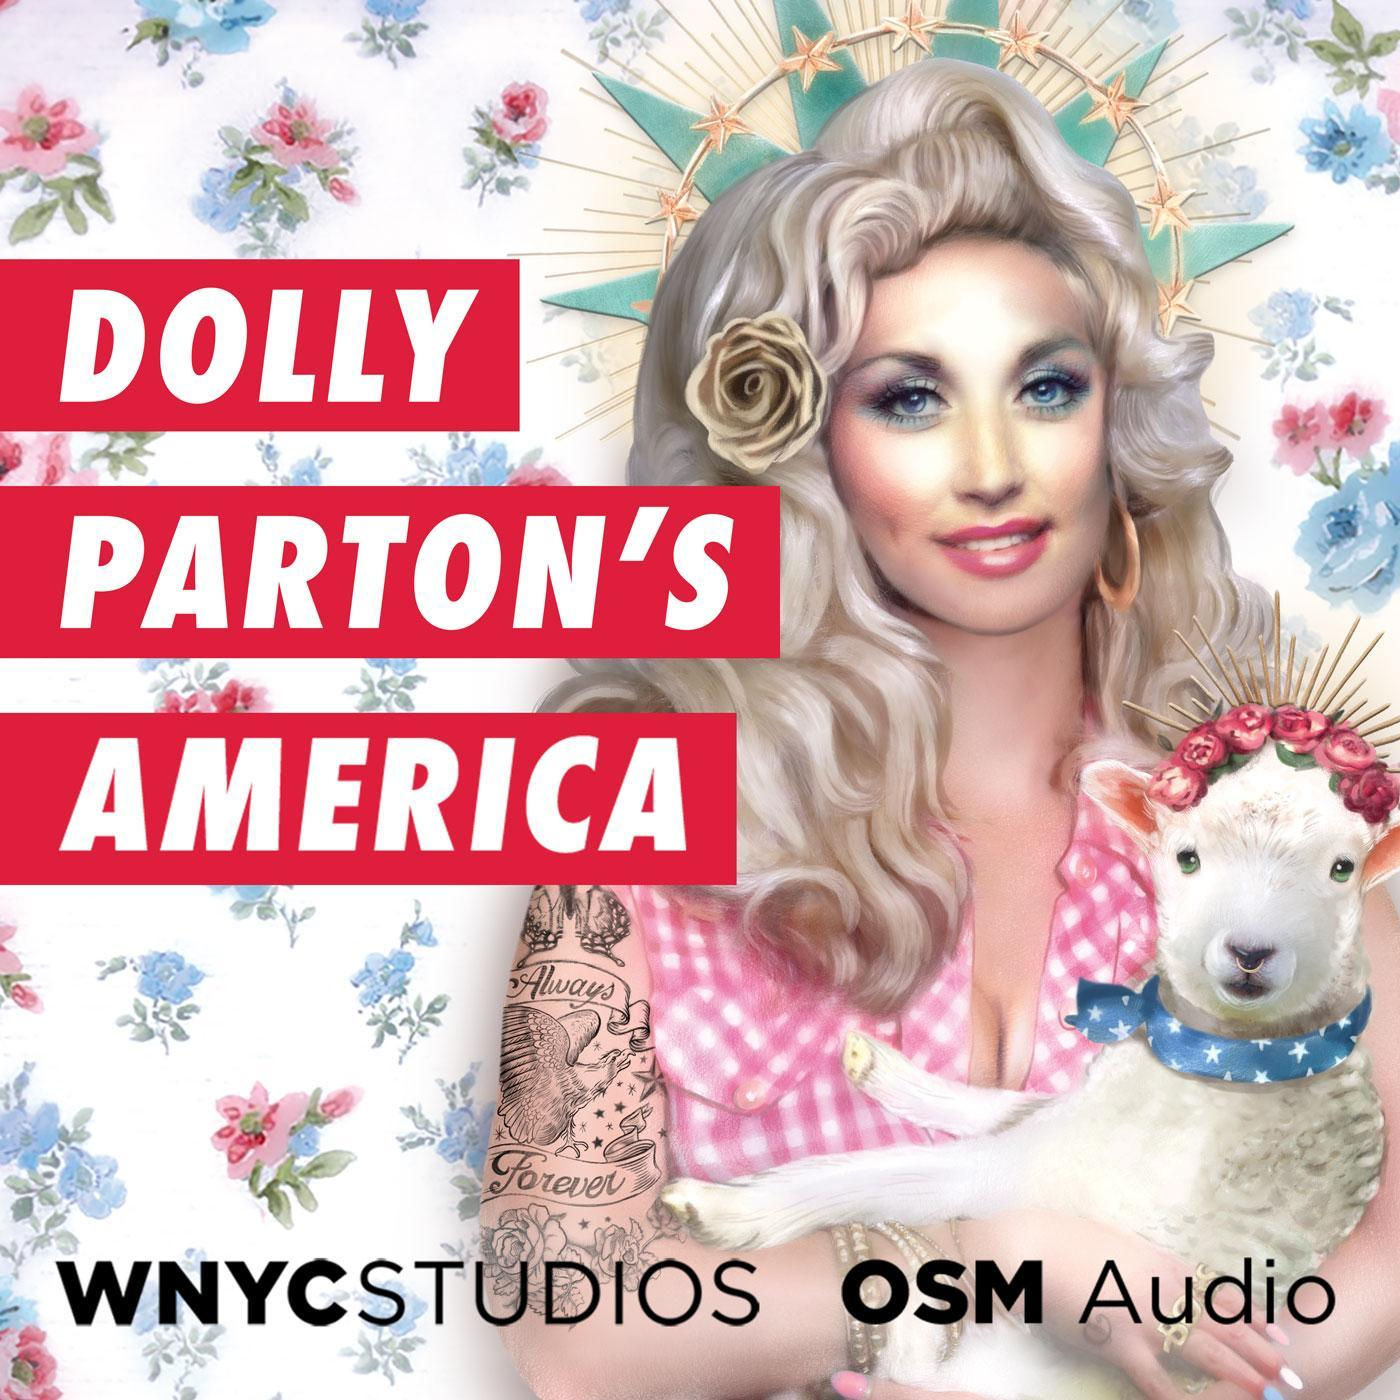 Dolly Parton's America podcast